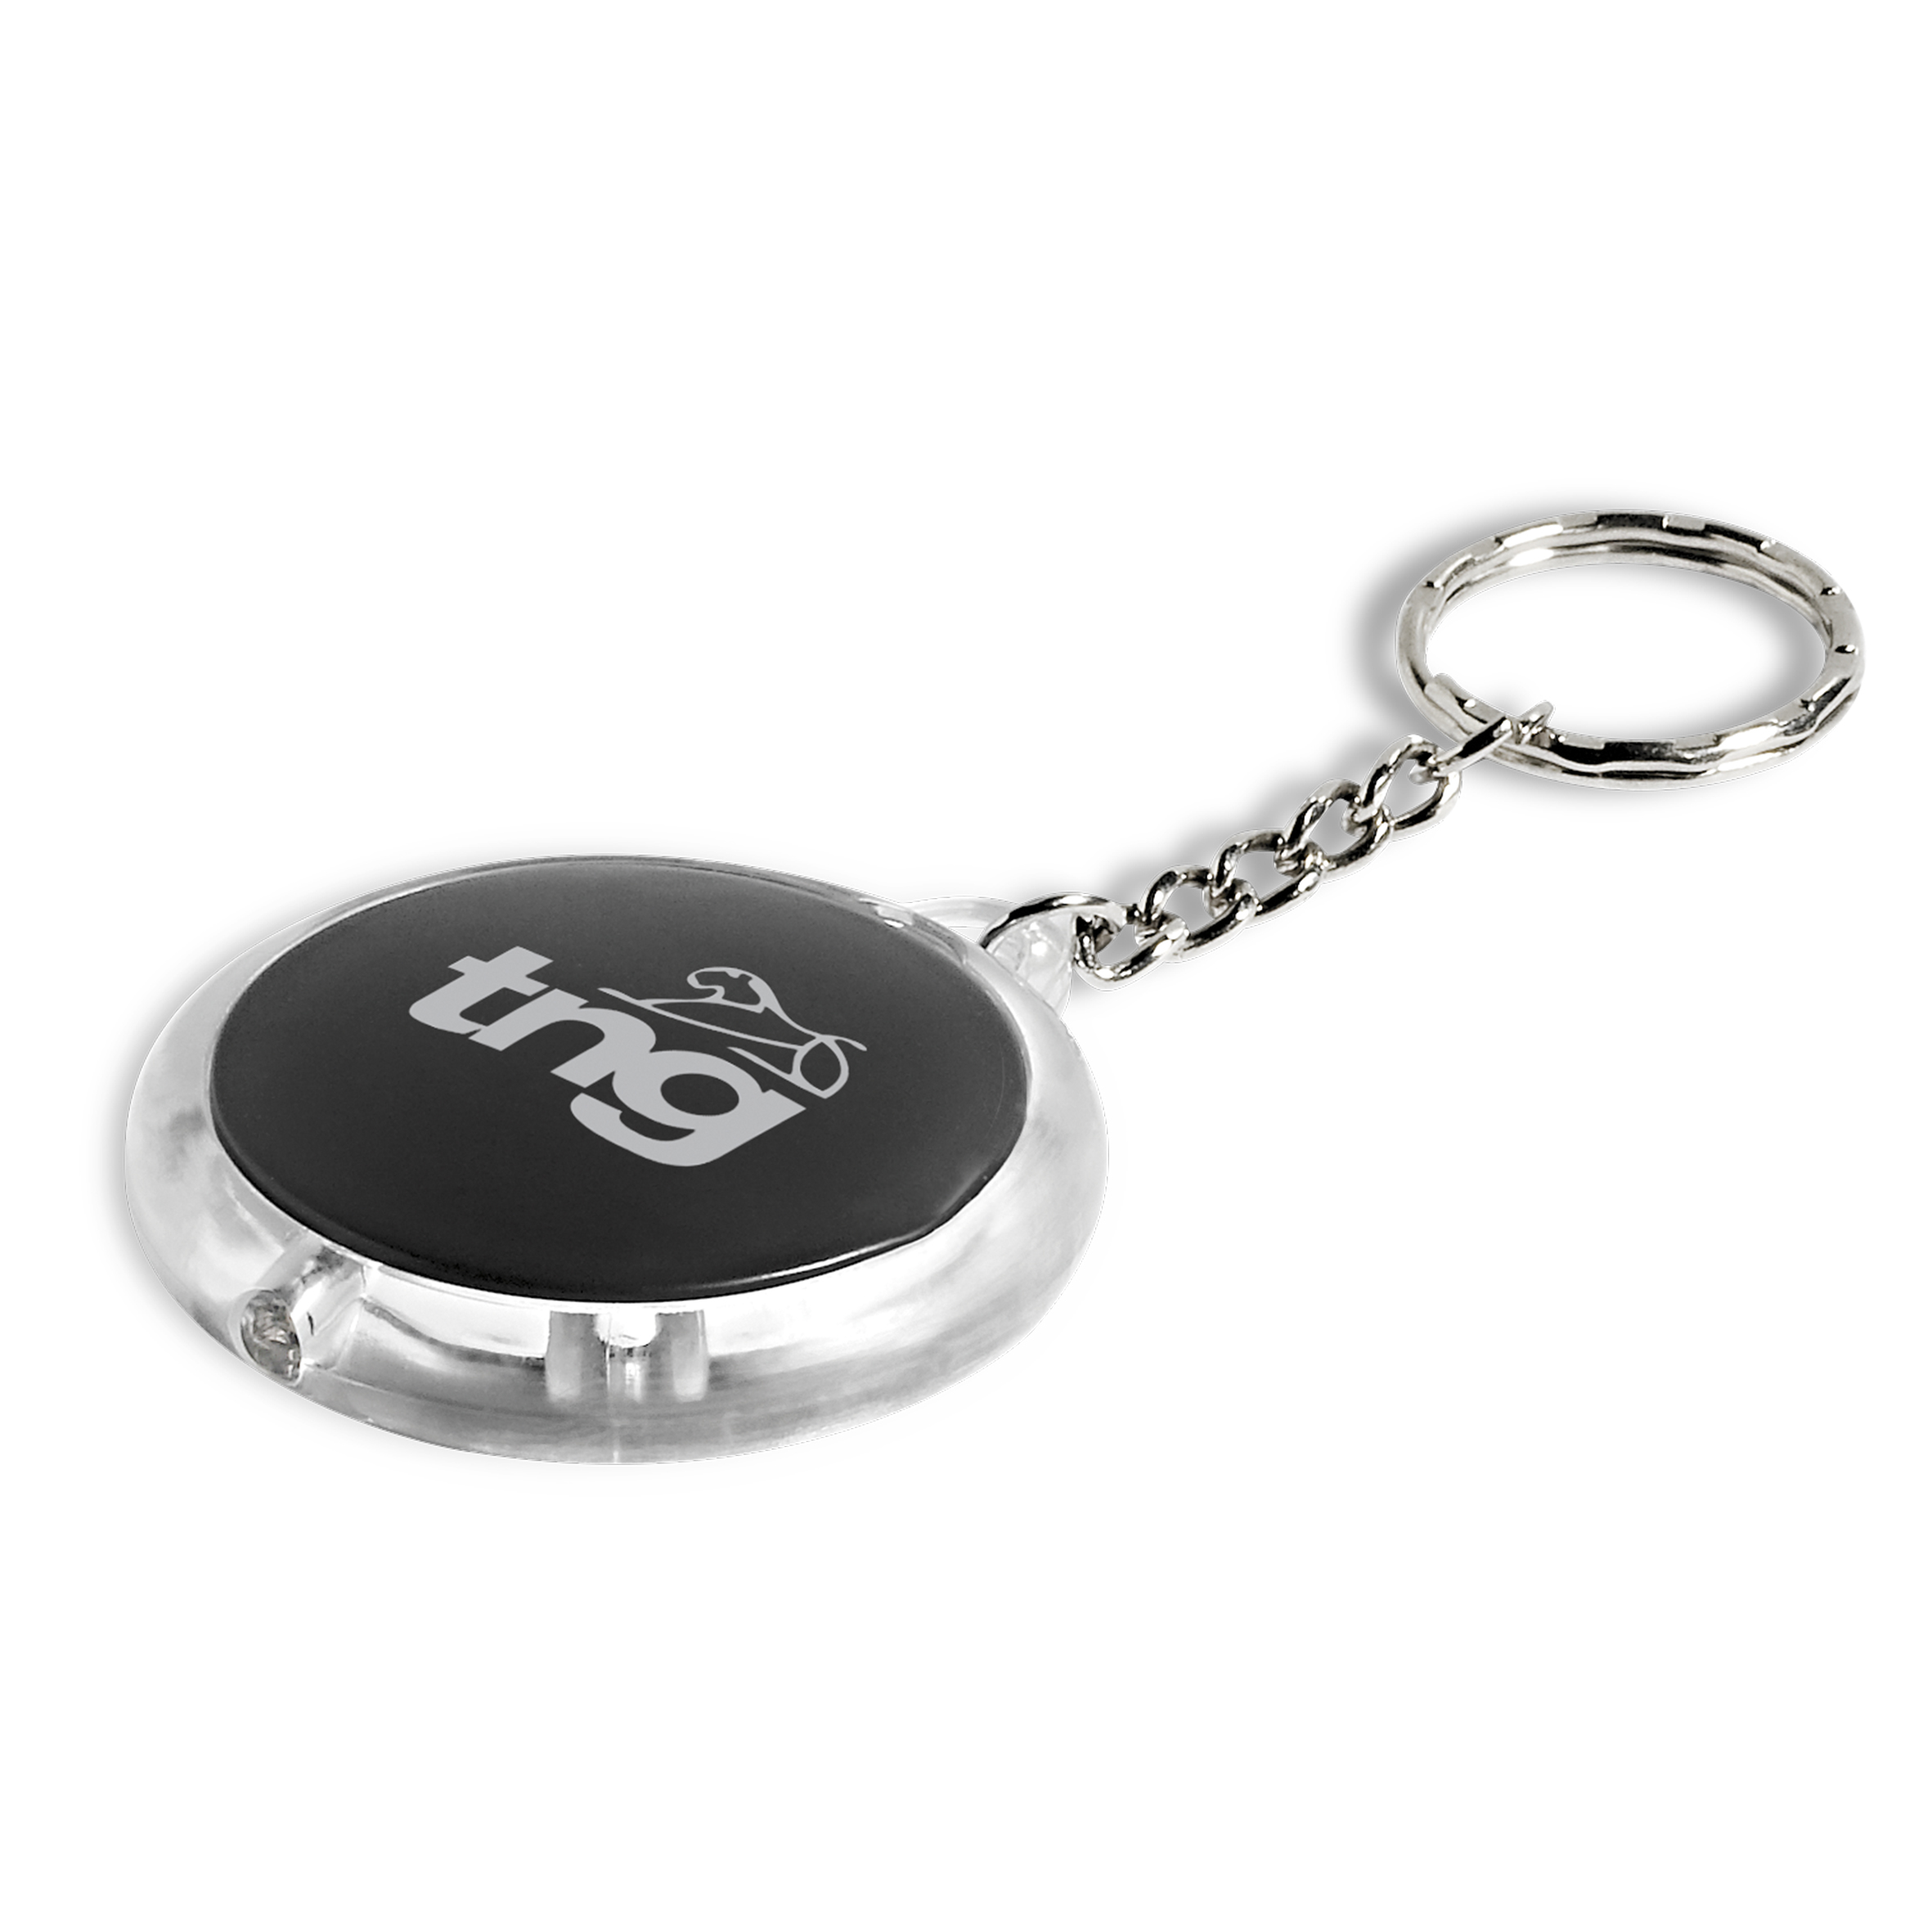 Product: Dazzle Torch Keyholder